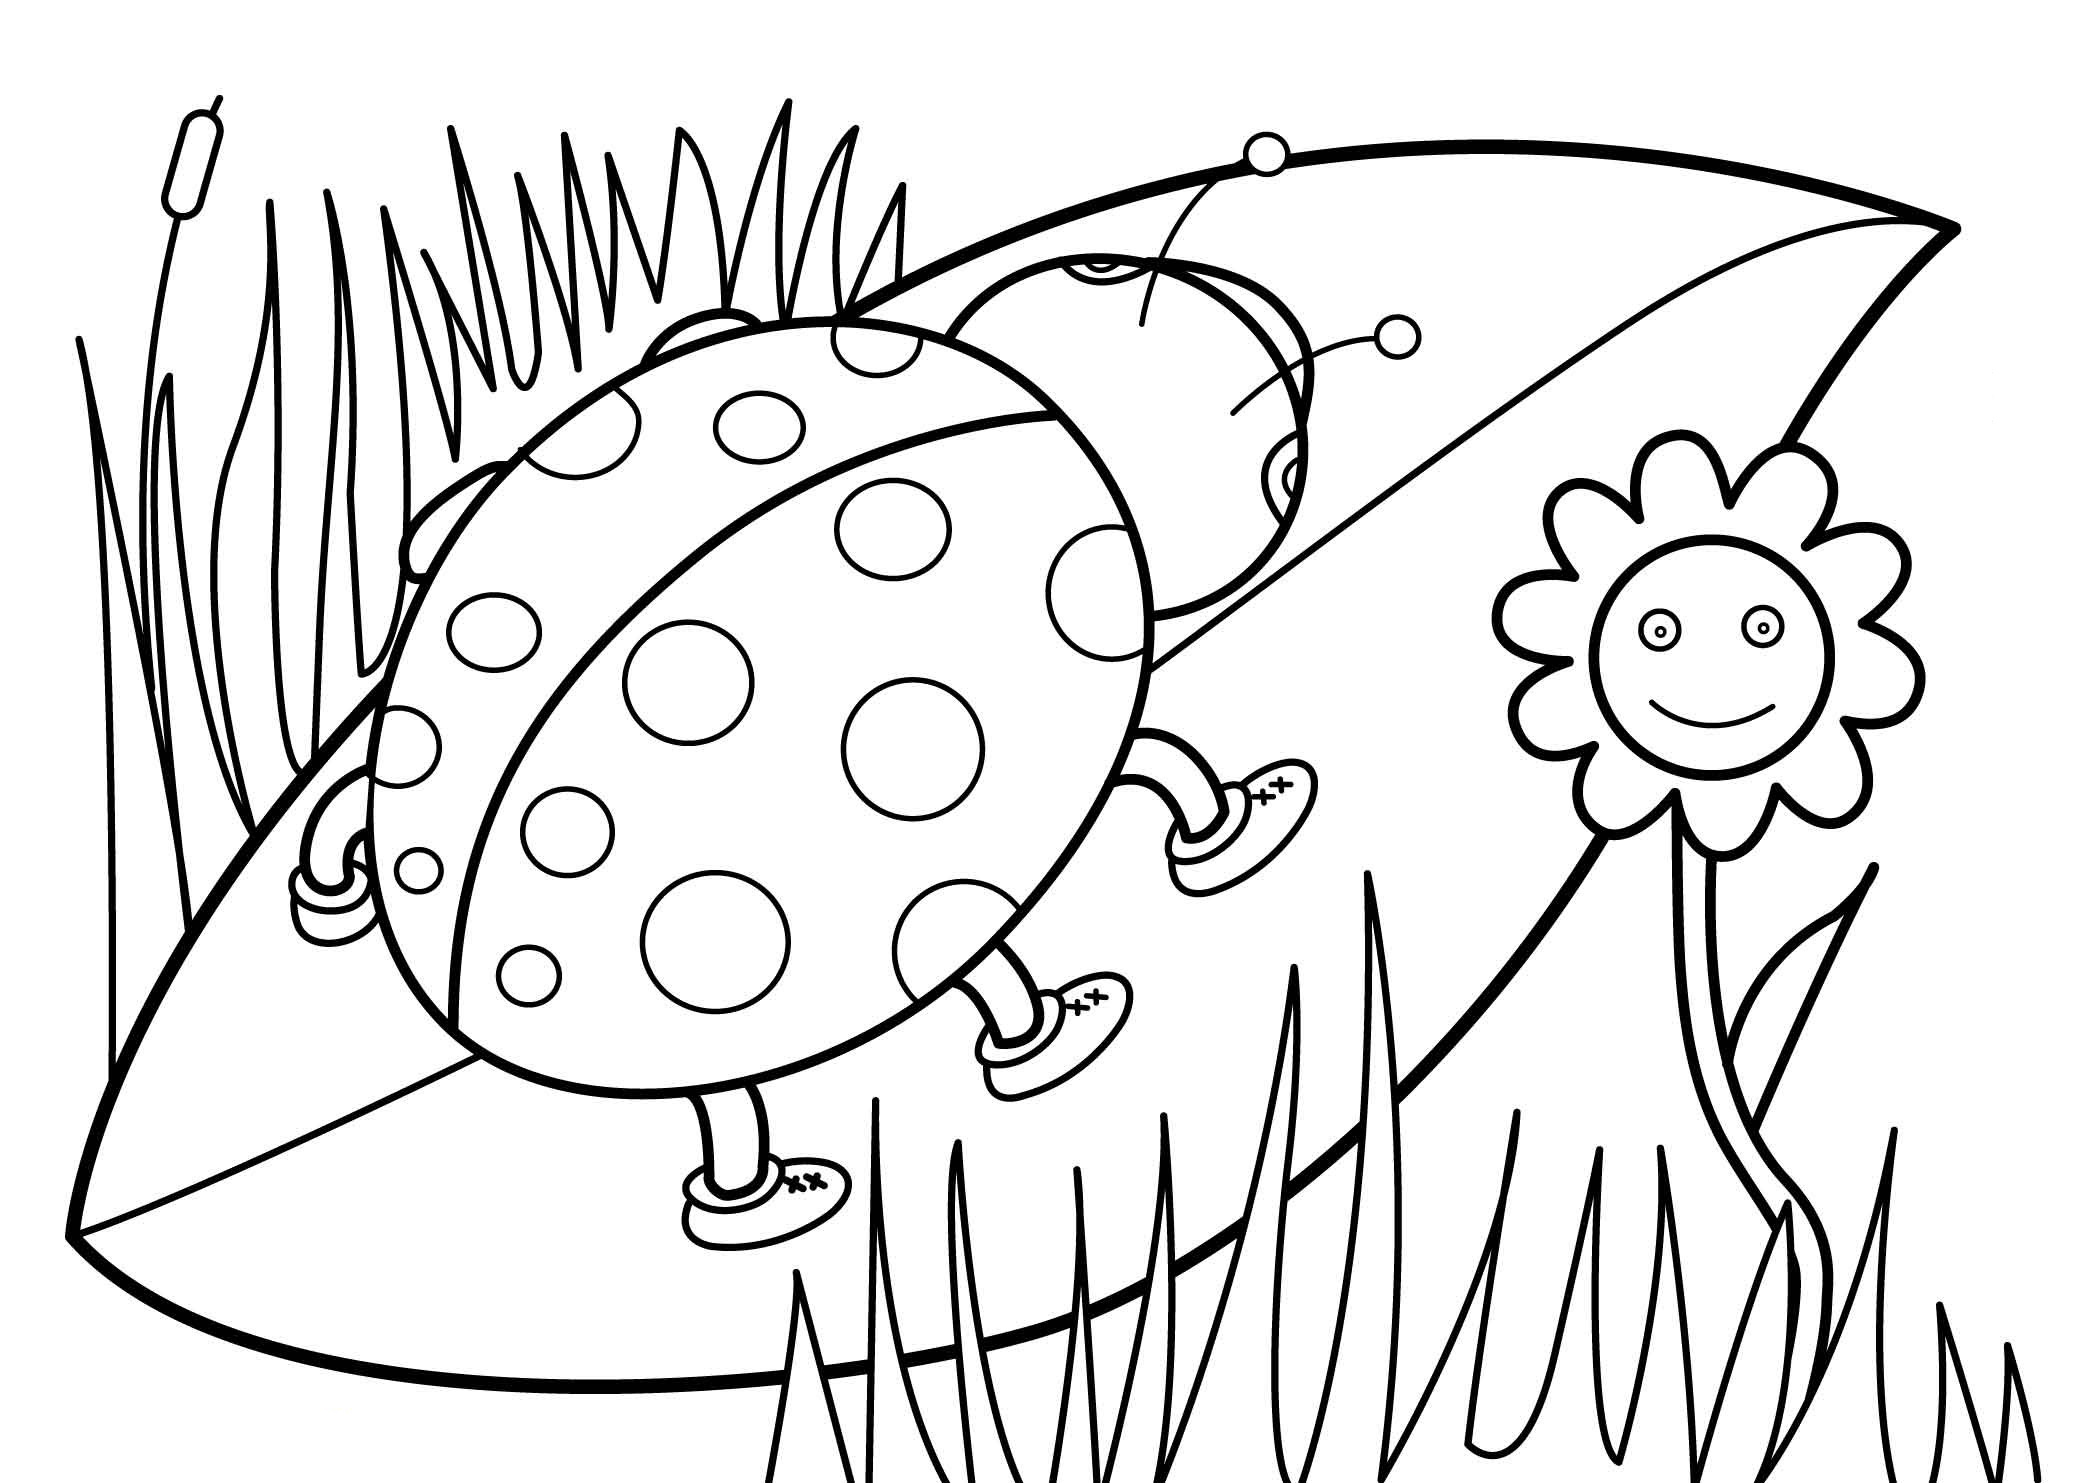 kids fun coloring pages balloon coloring pages for kids to print for free kids pages fun coloring